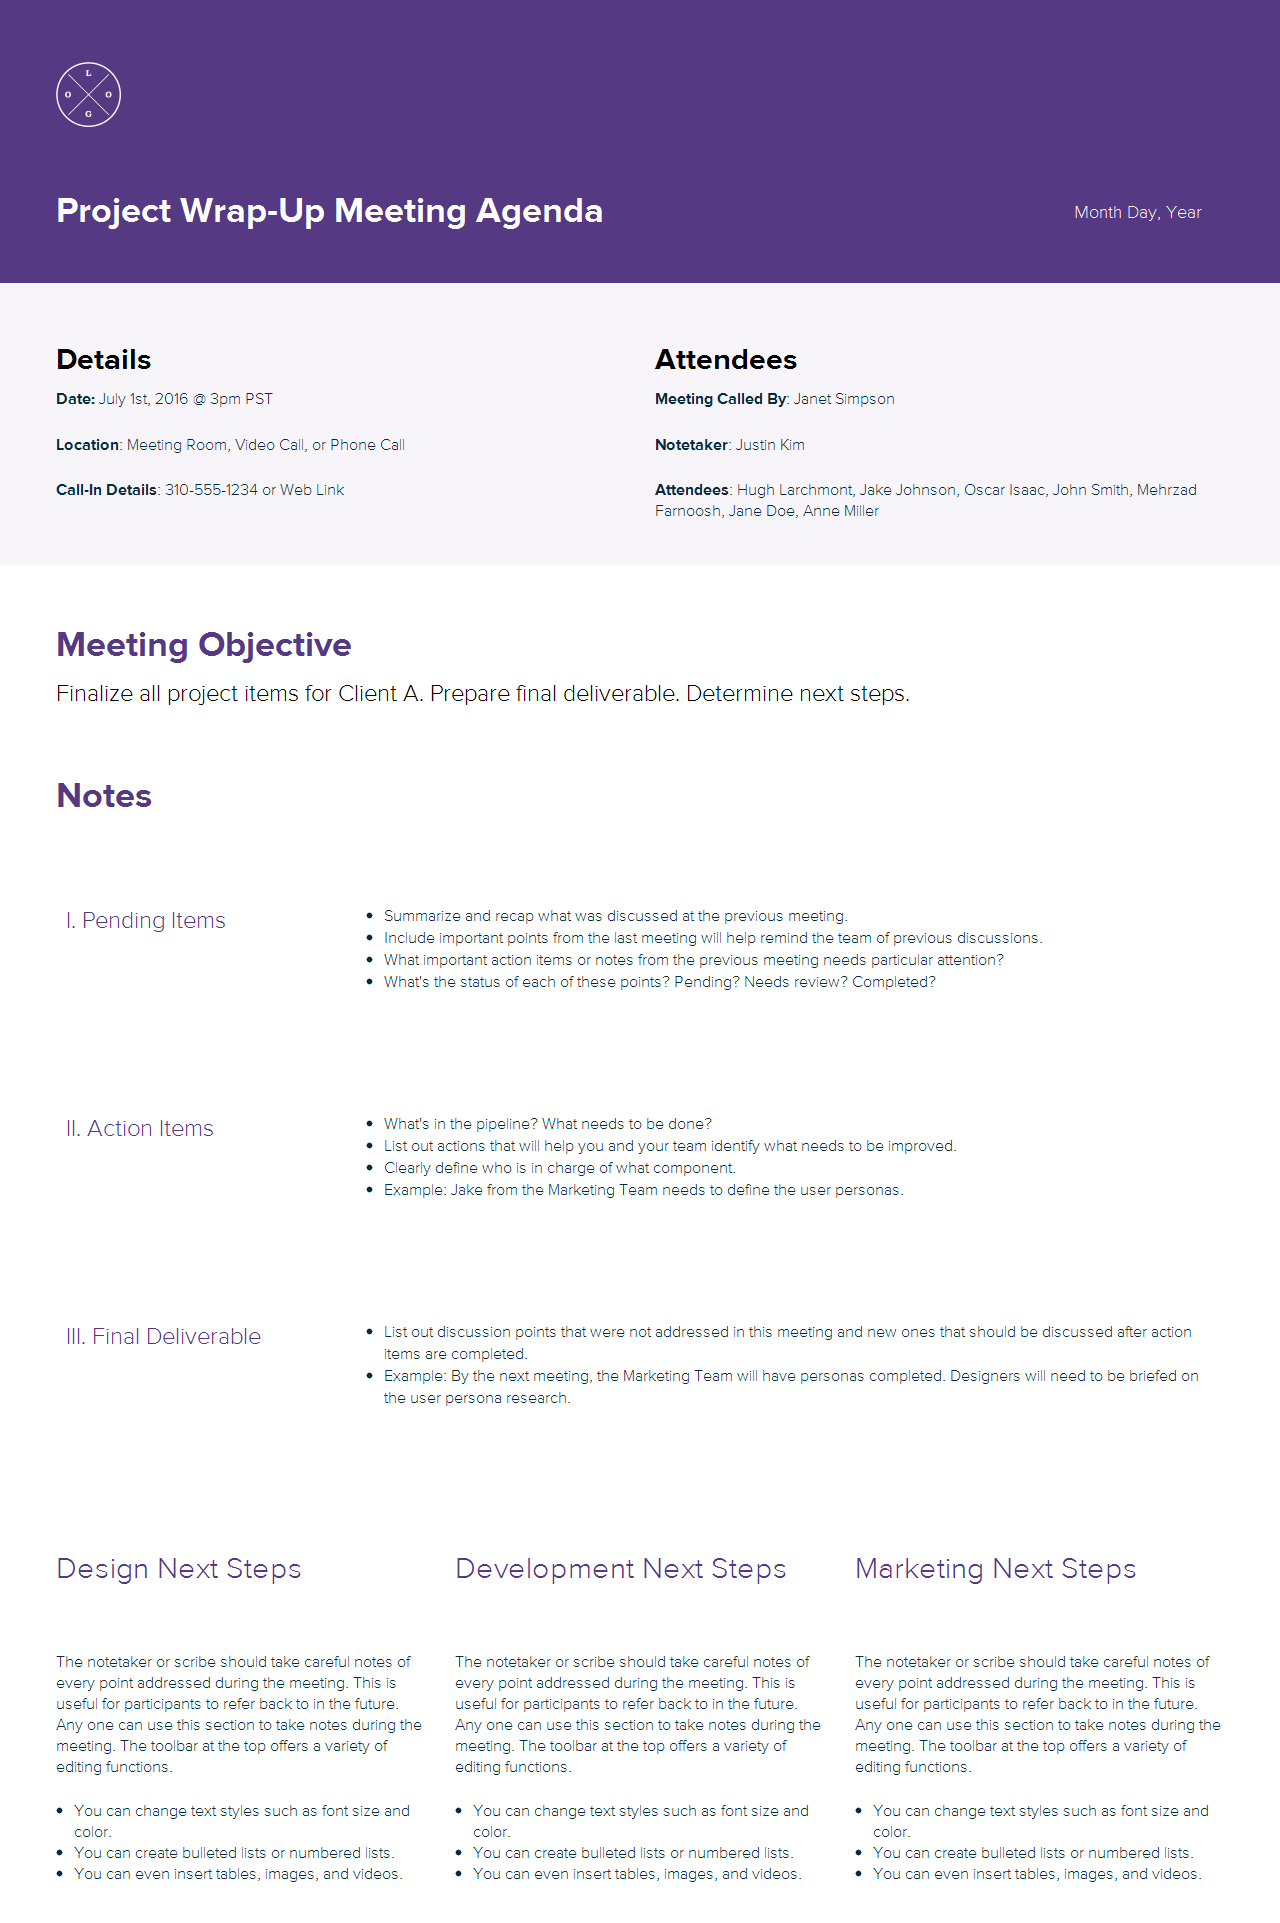 Project wrap-up meeting agenda sample by Xtensio